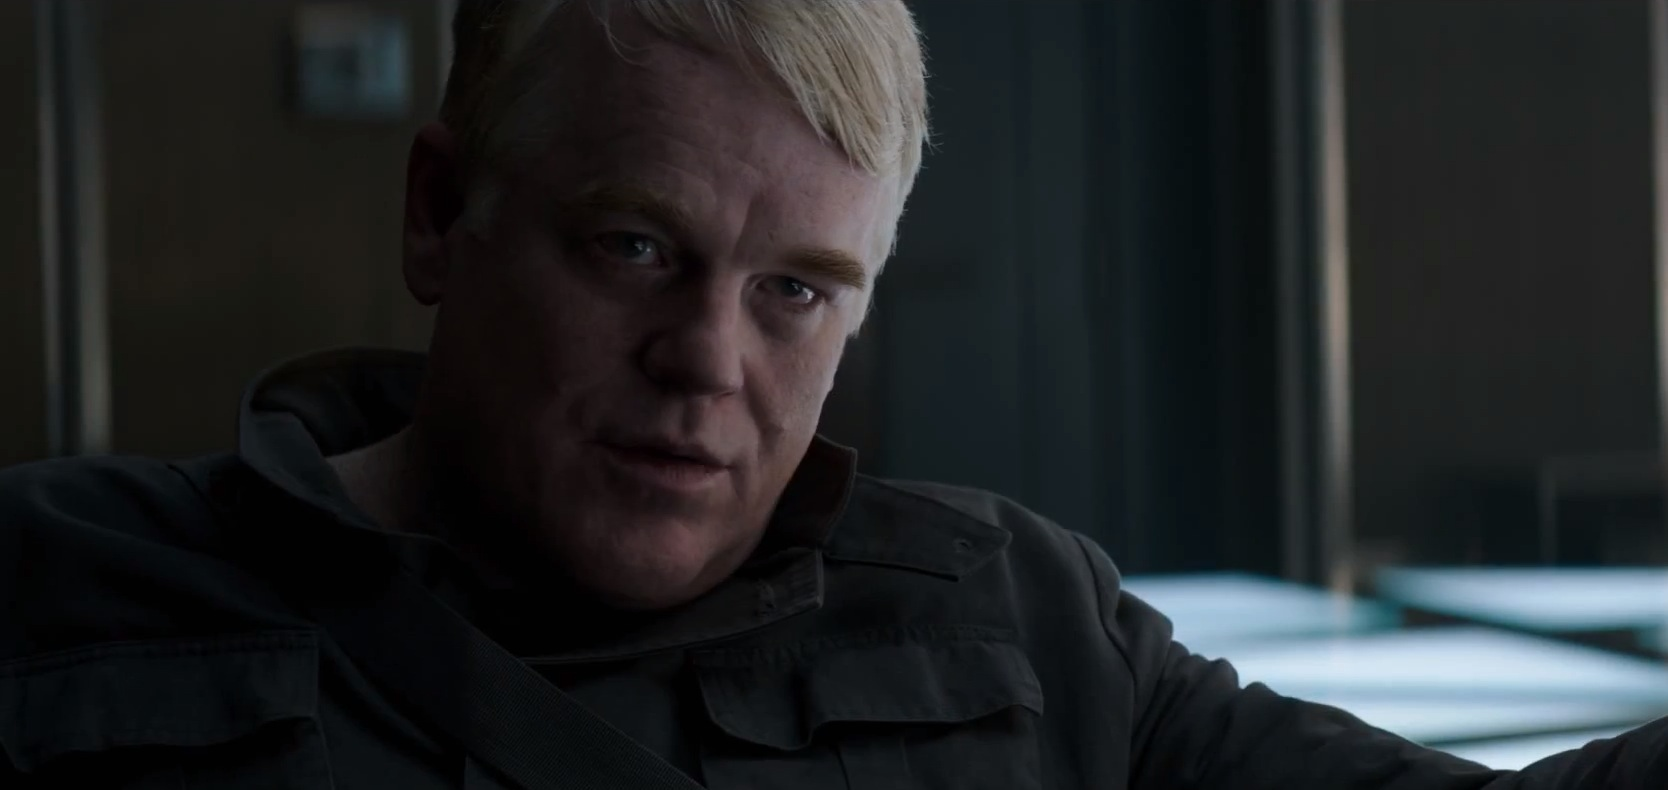 Philip Seymour Hoffman in The Hunger Games: Mockingjay Part 1